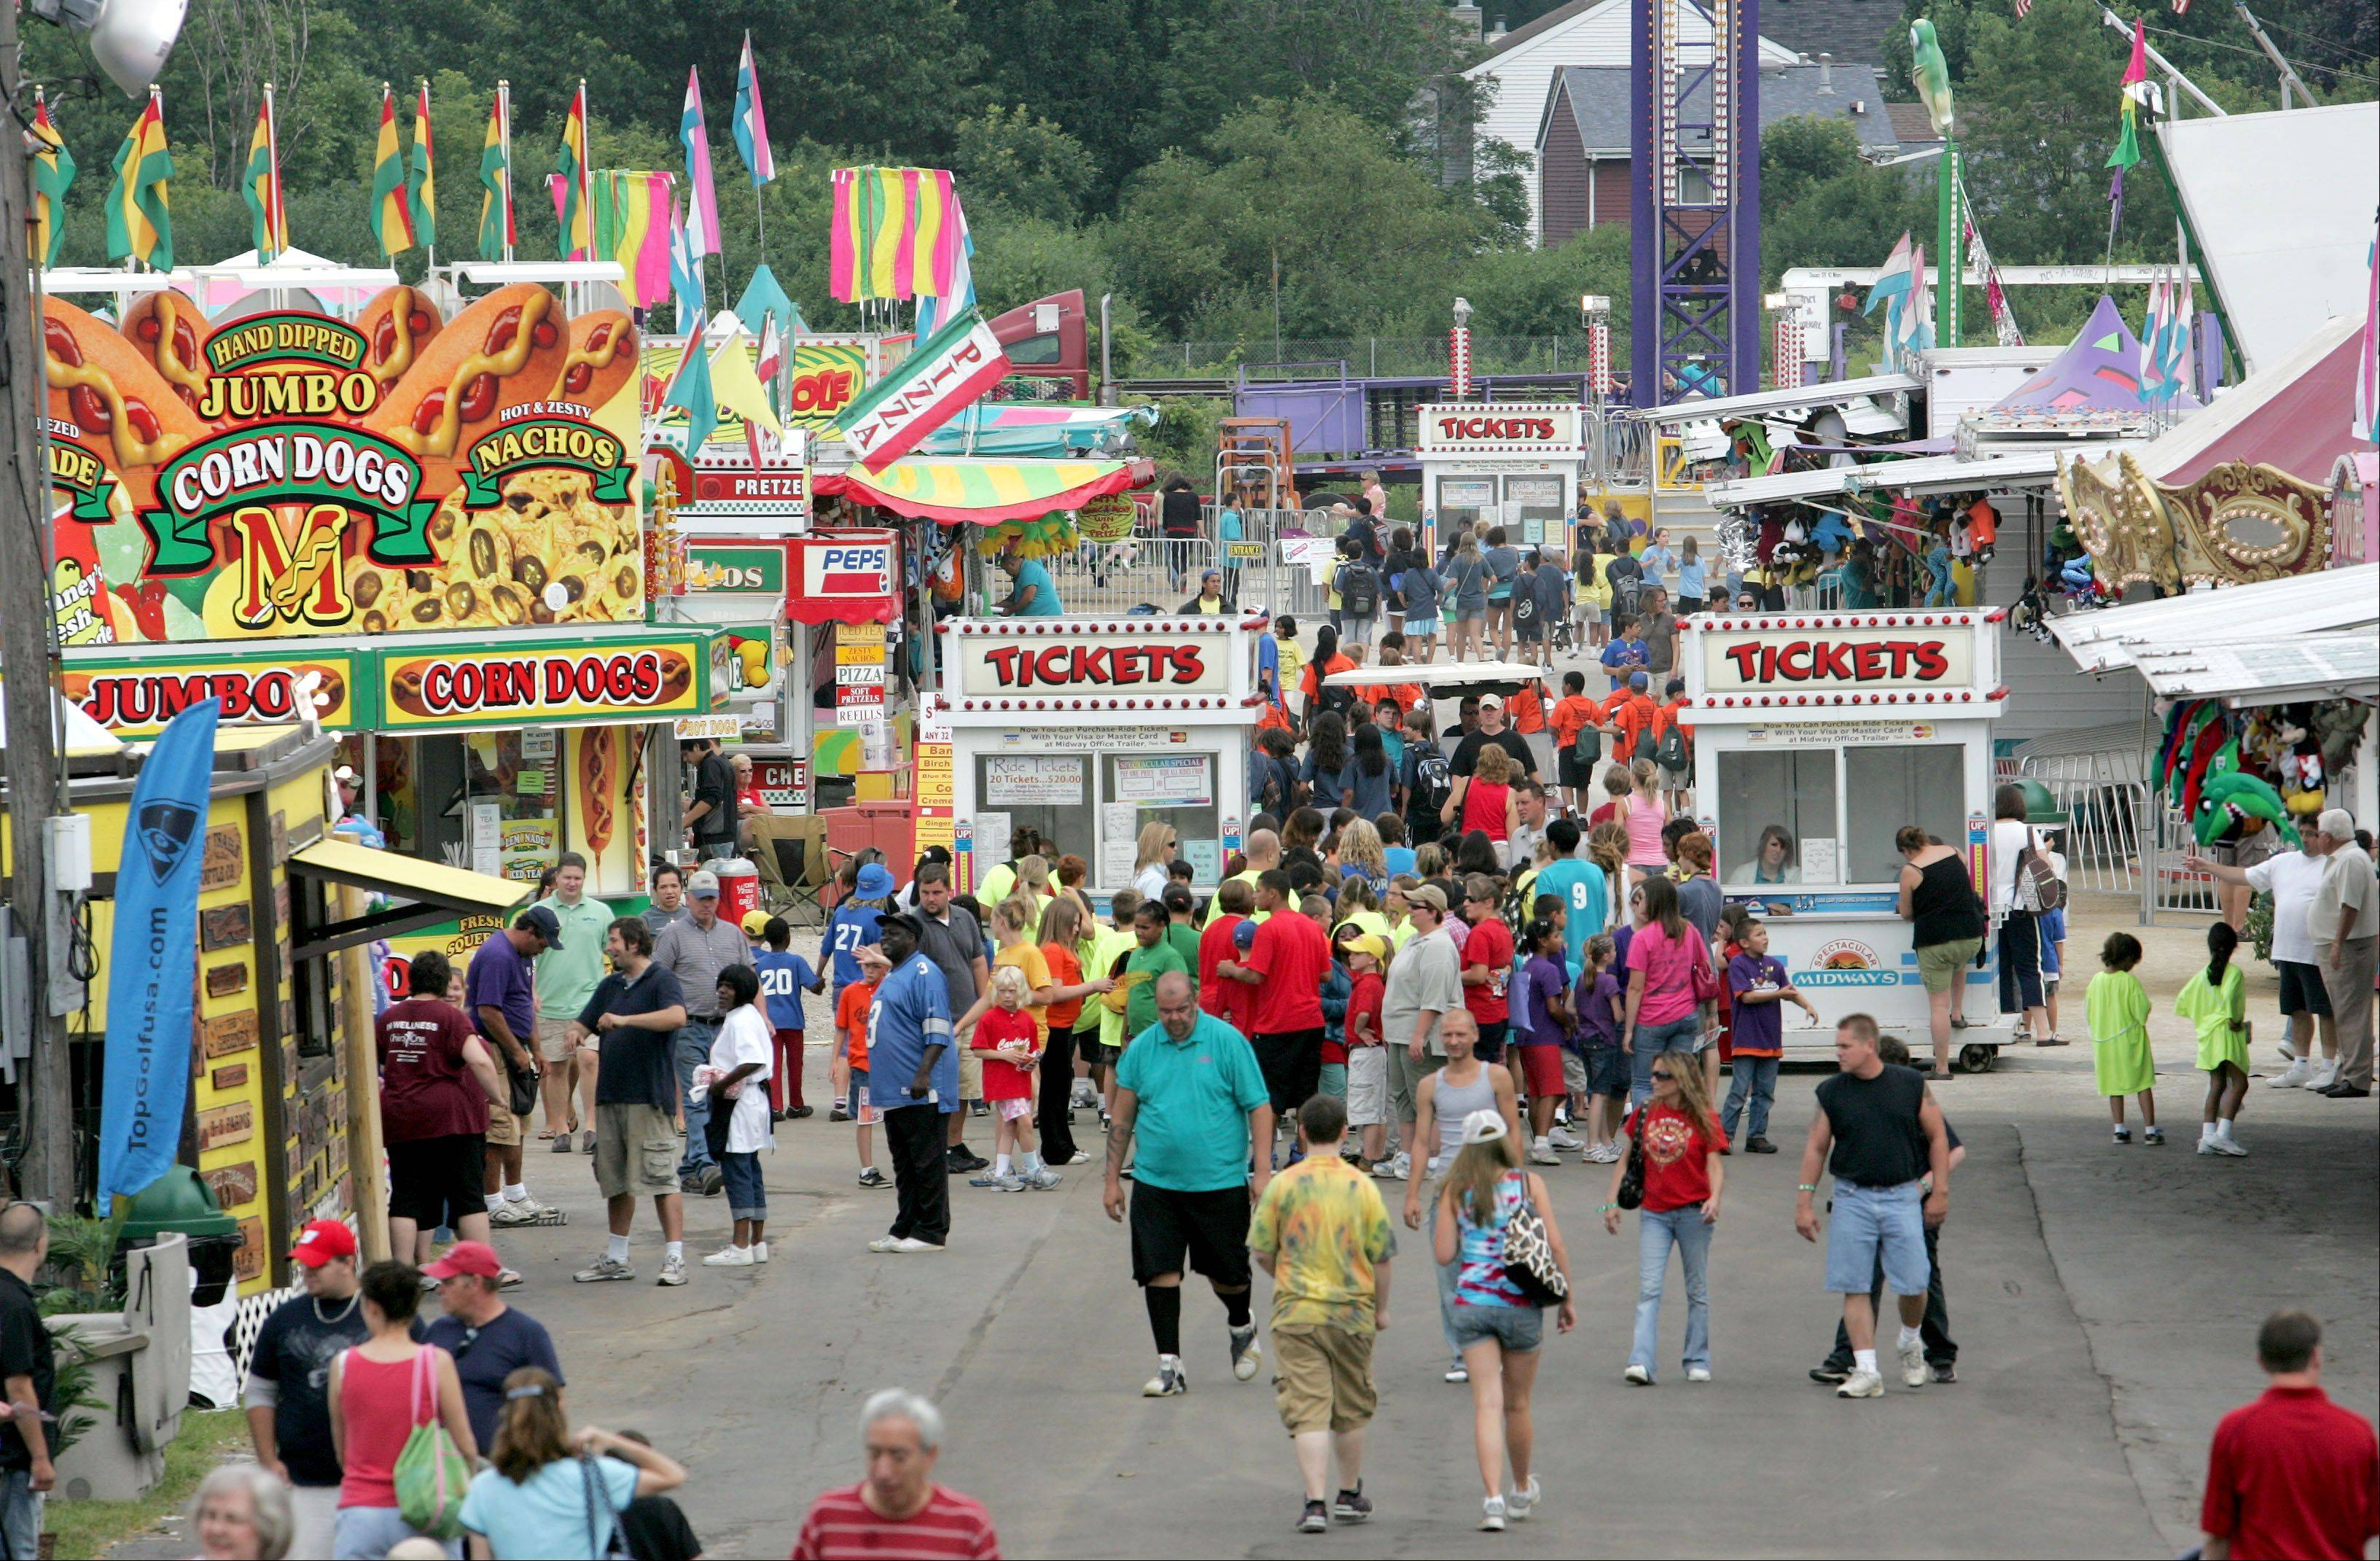 The DuPage County Fair returns Wednesday to Wheaton and runs from 8 a.m. to 11 p.m. each day through Sunday at 2015 Manchester Road.